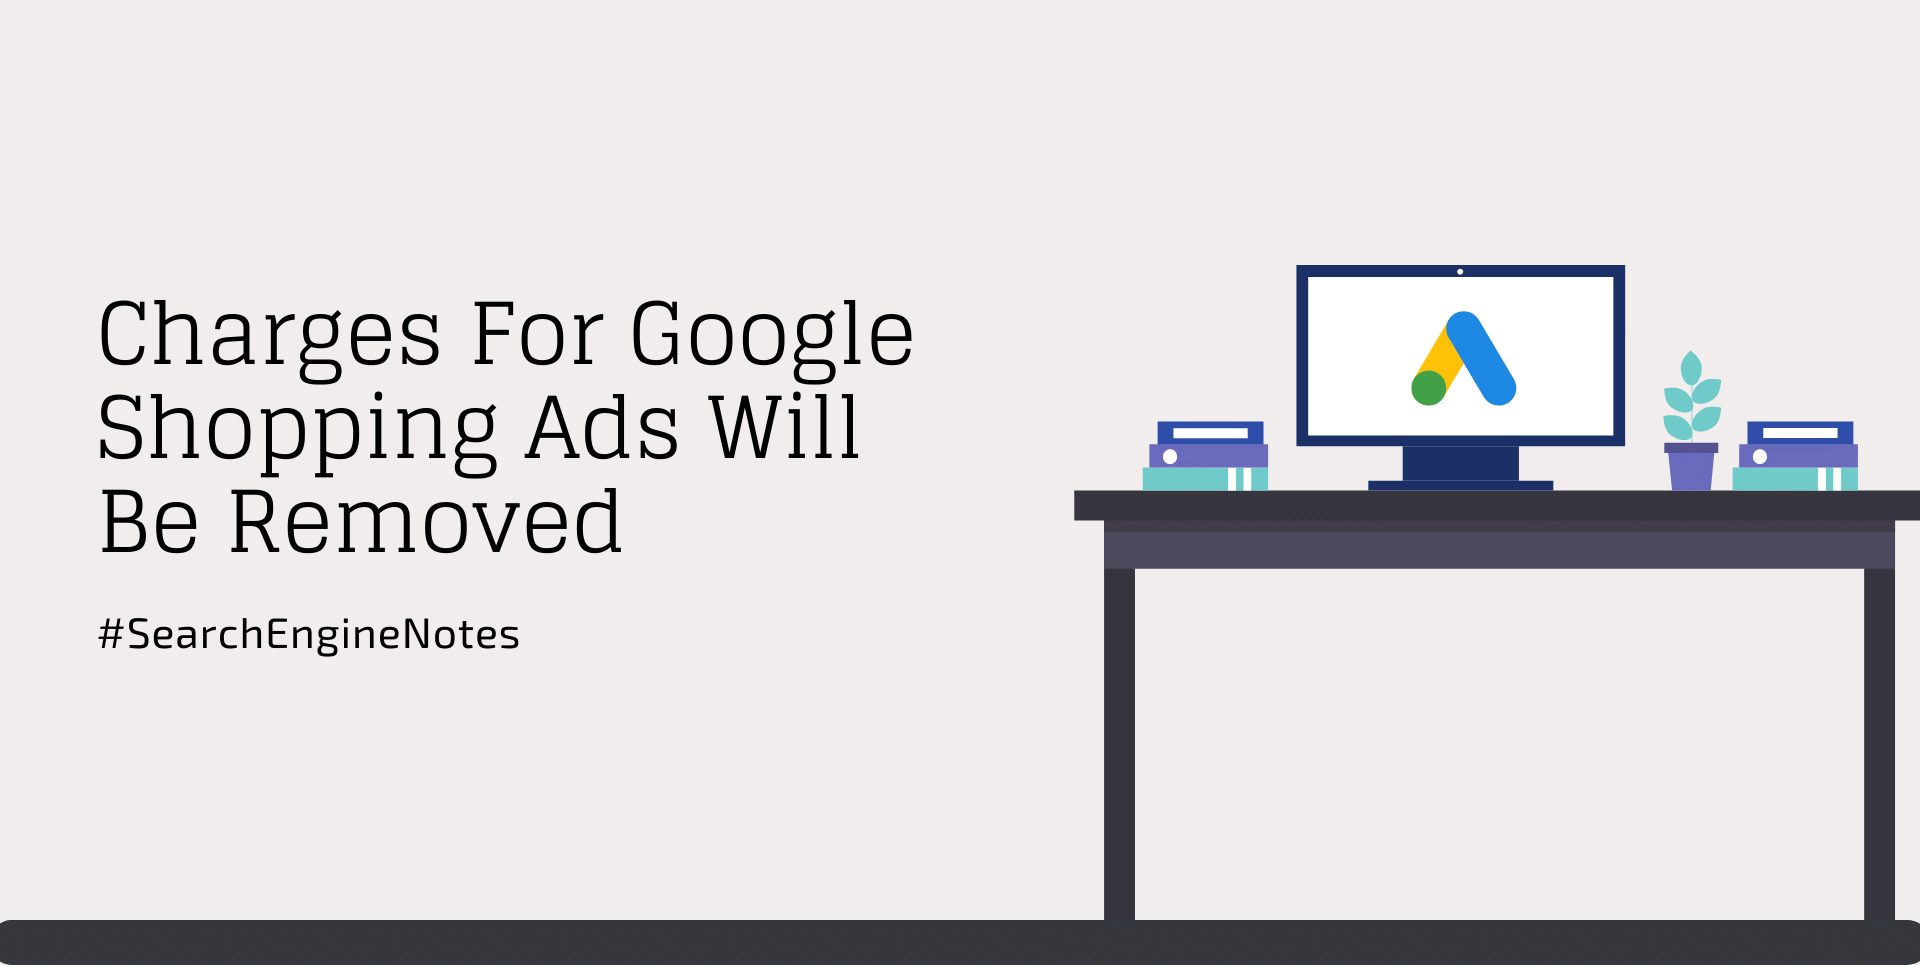 Charges for Google Shopping Ads Will be Removed